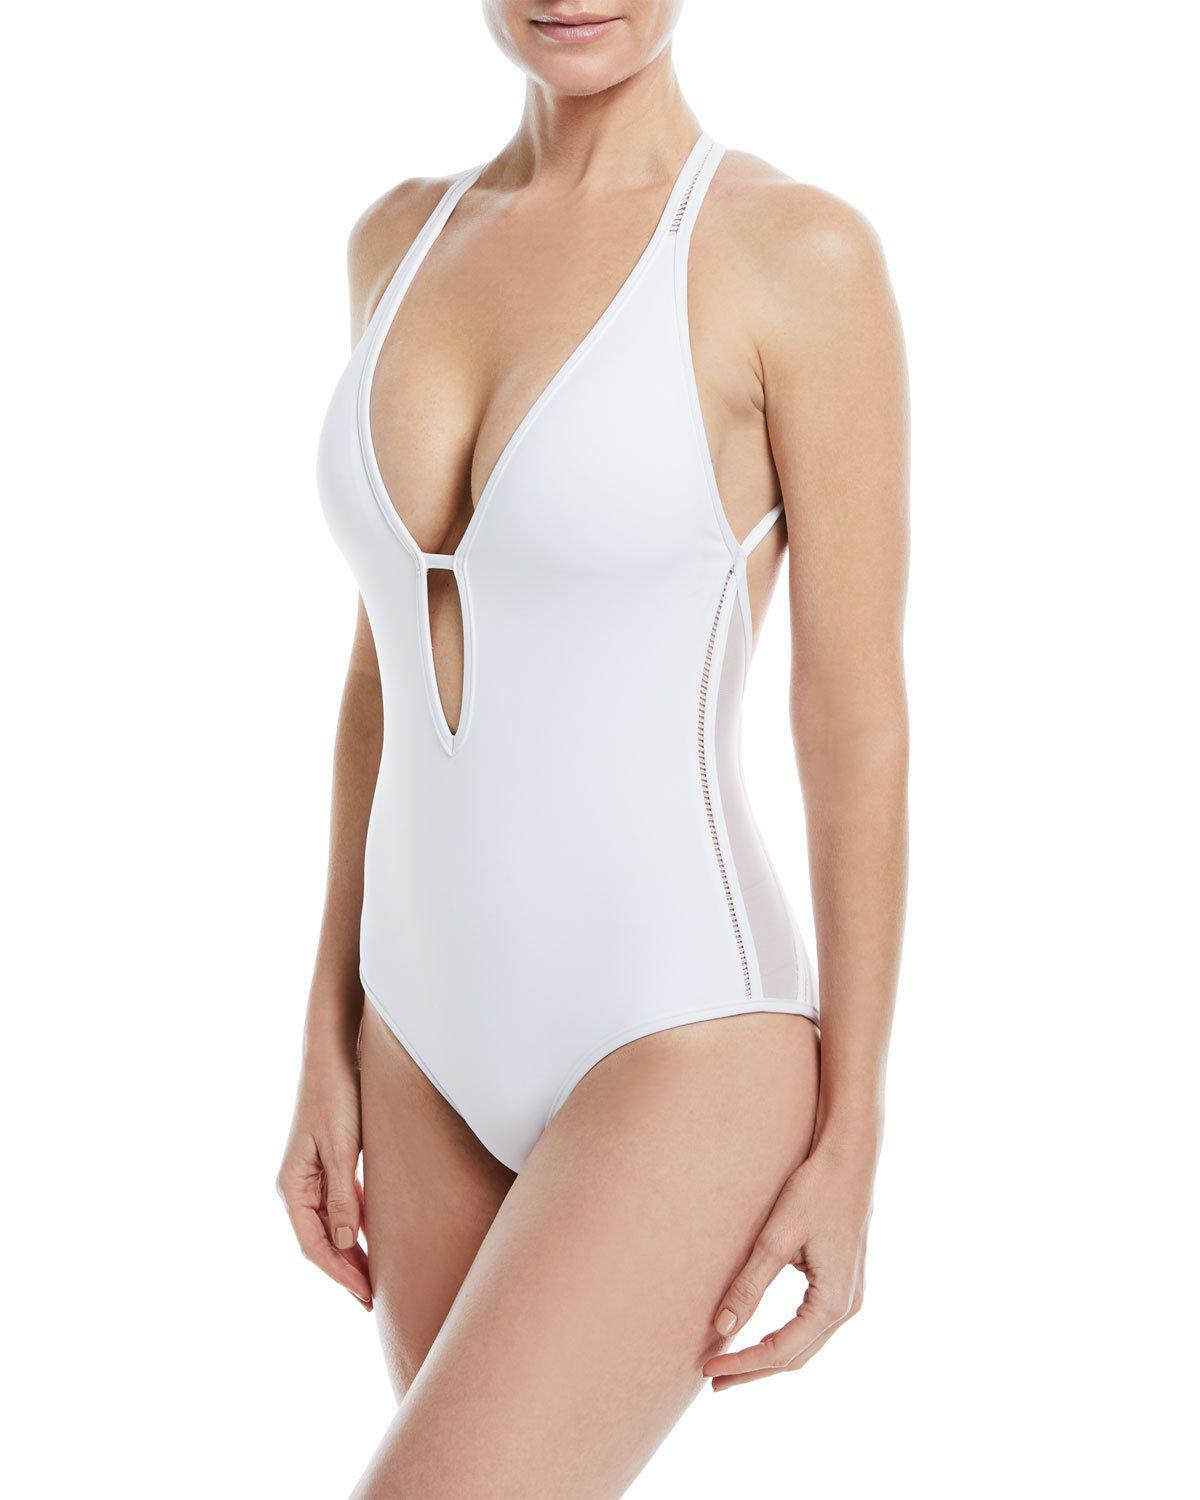 4ecbff9321da9 Jets by Jessika Allen. Women s White Aspire Plunge Strappy One-piece  Swimsuit